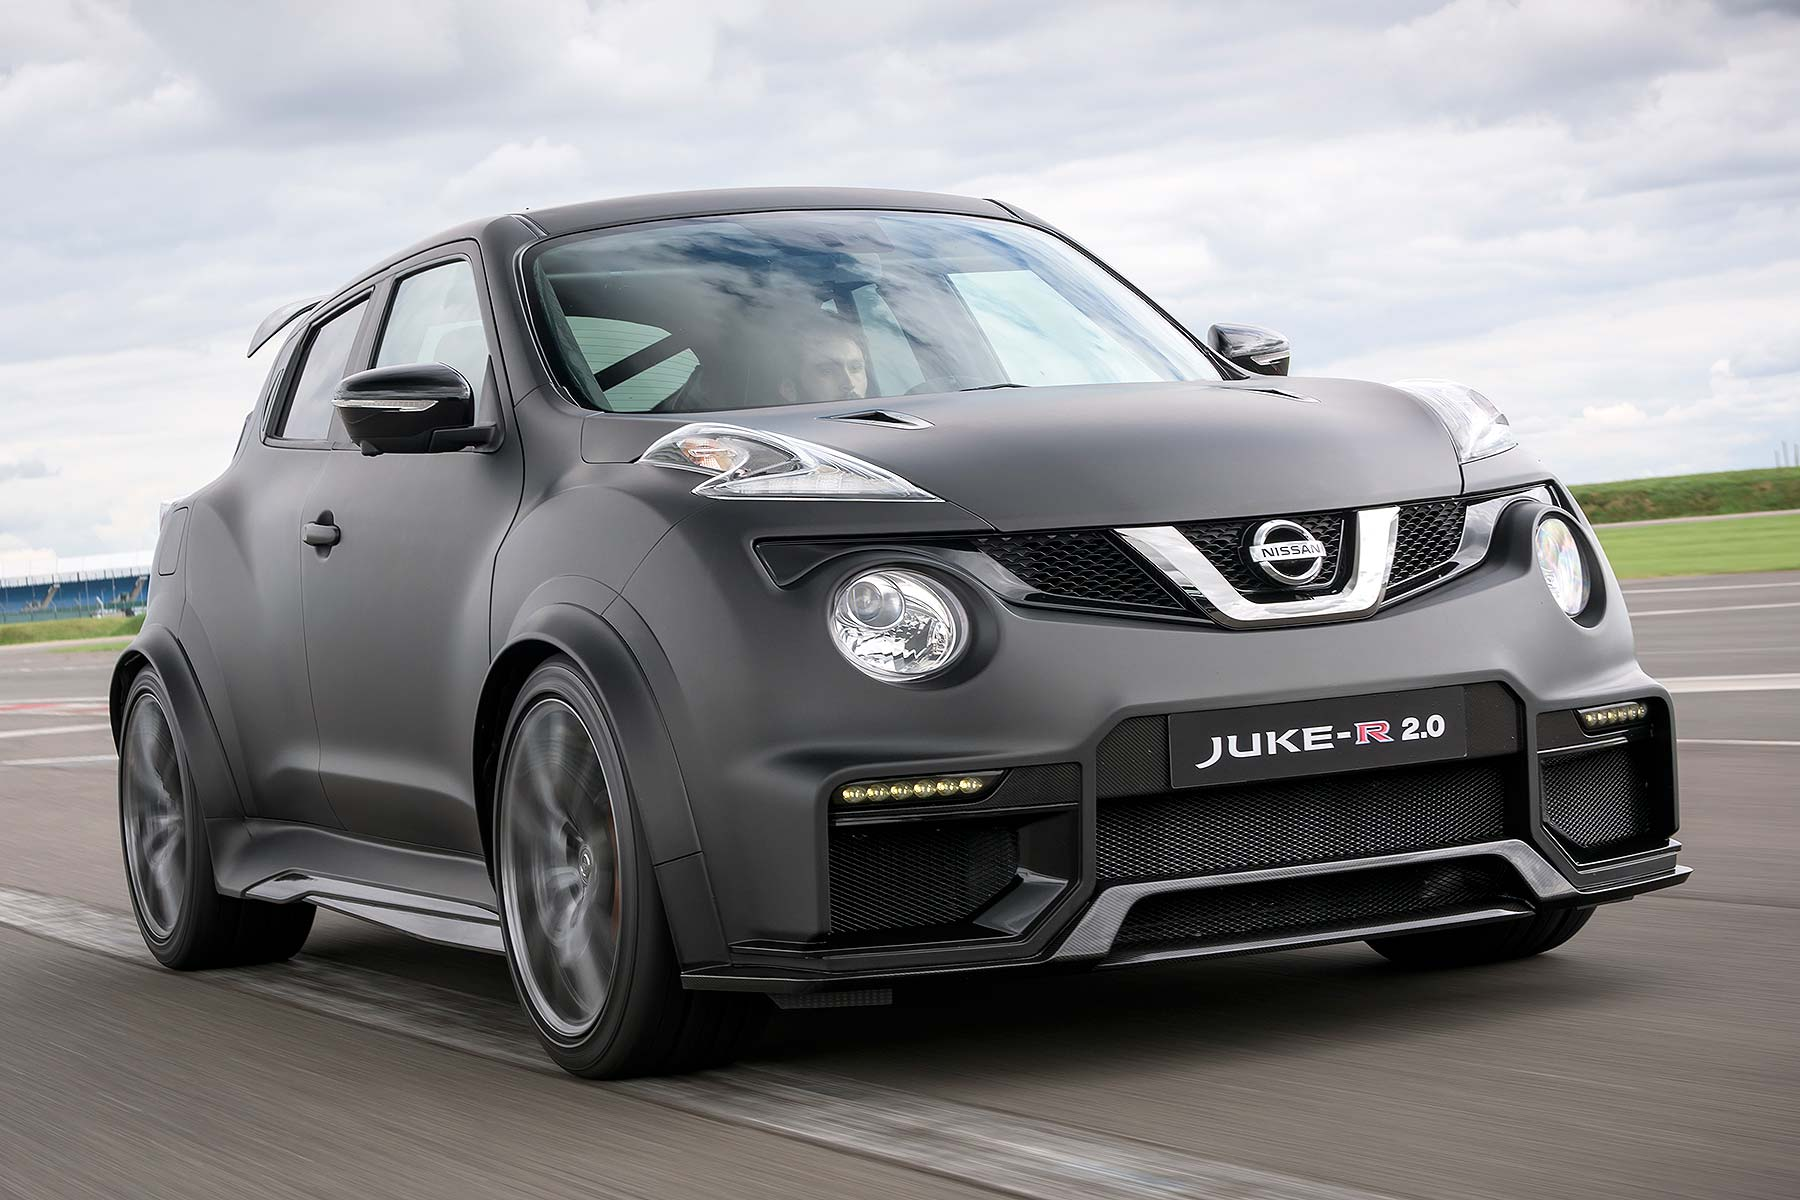 Nissan Juke R 20 Review 2015 First Drive Motoring Research